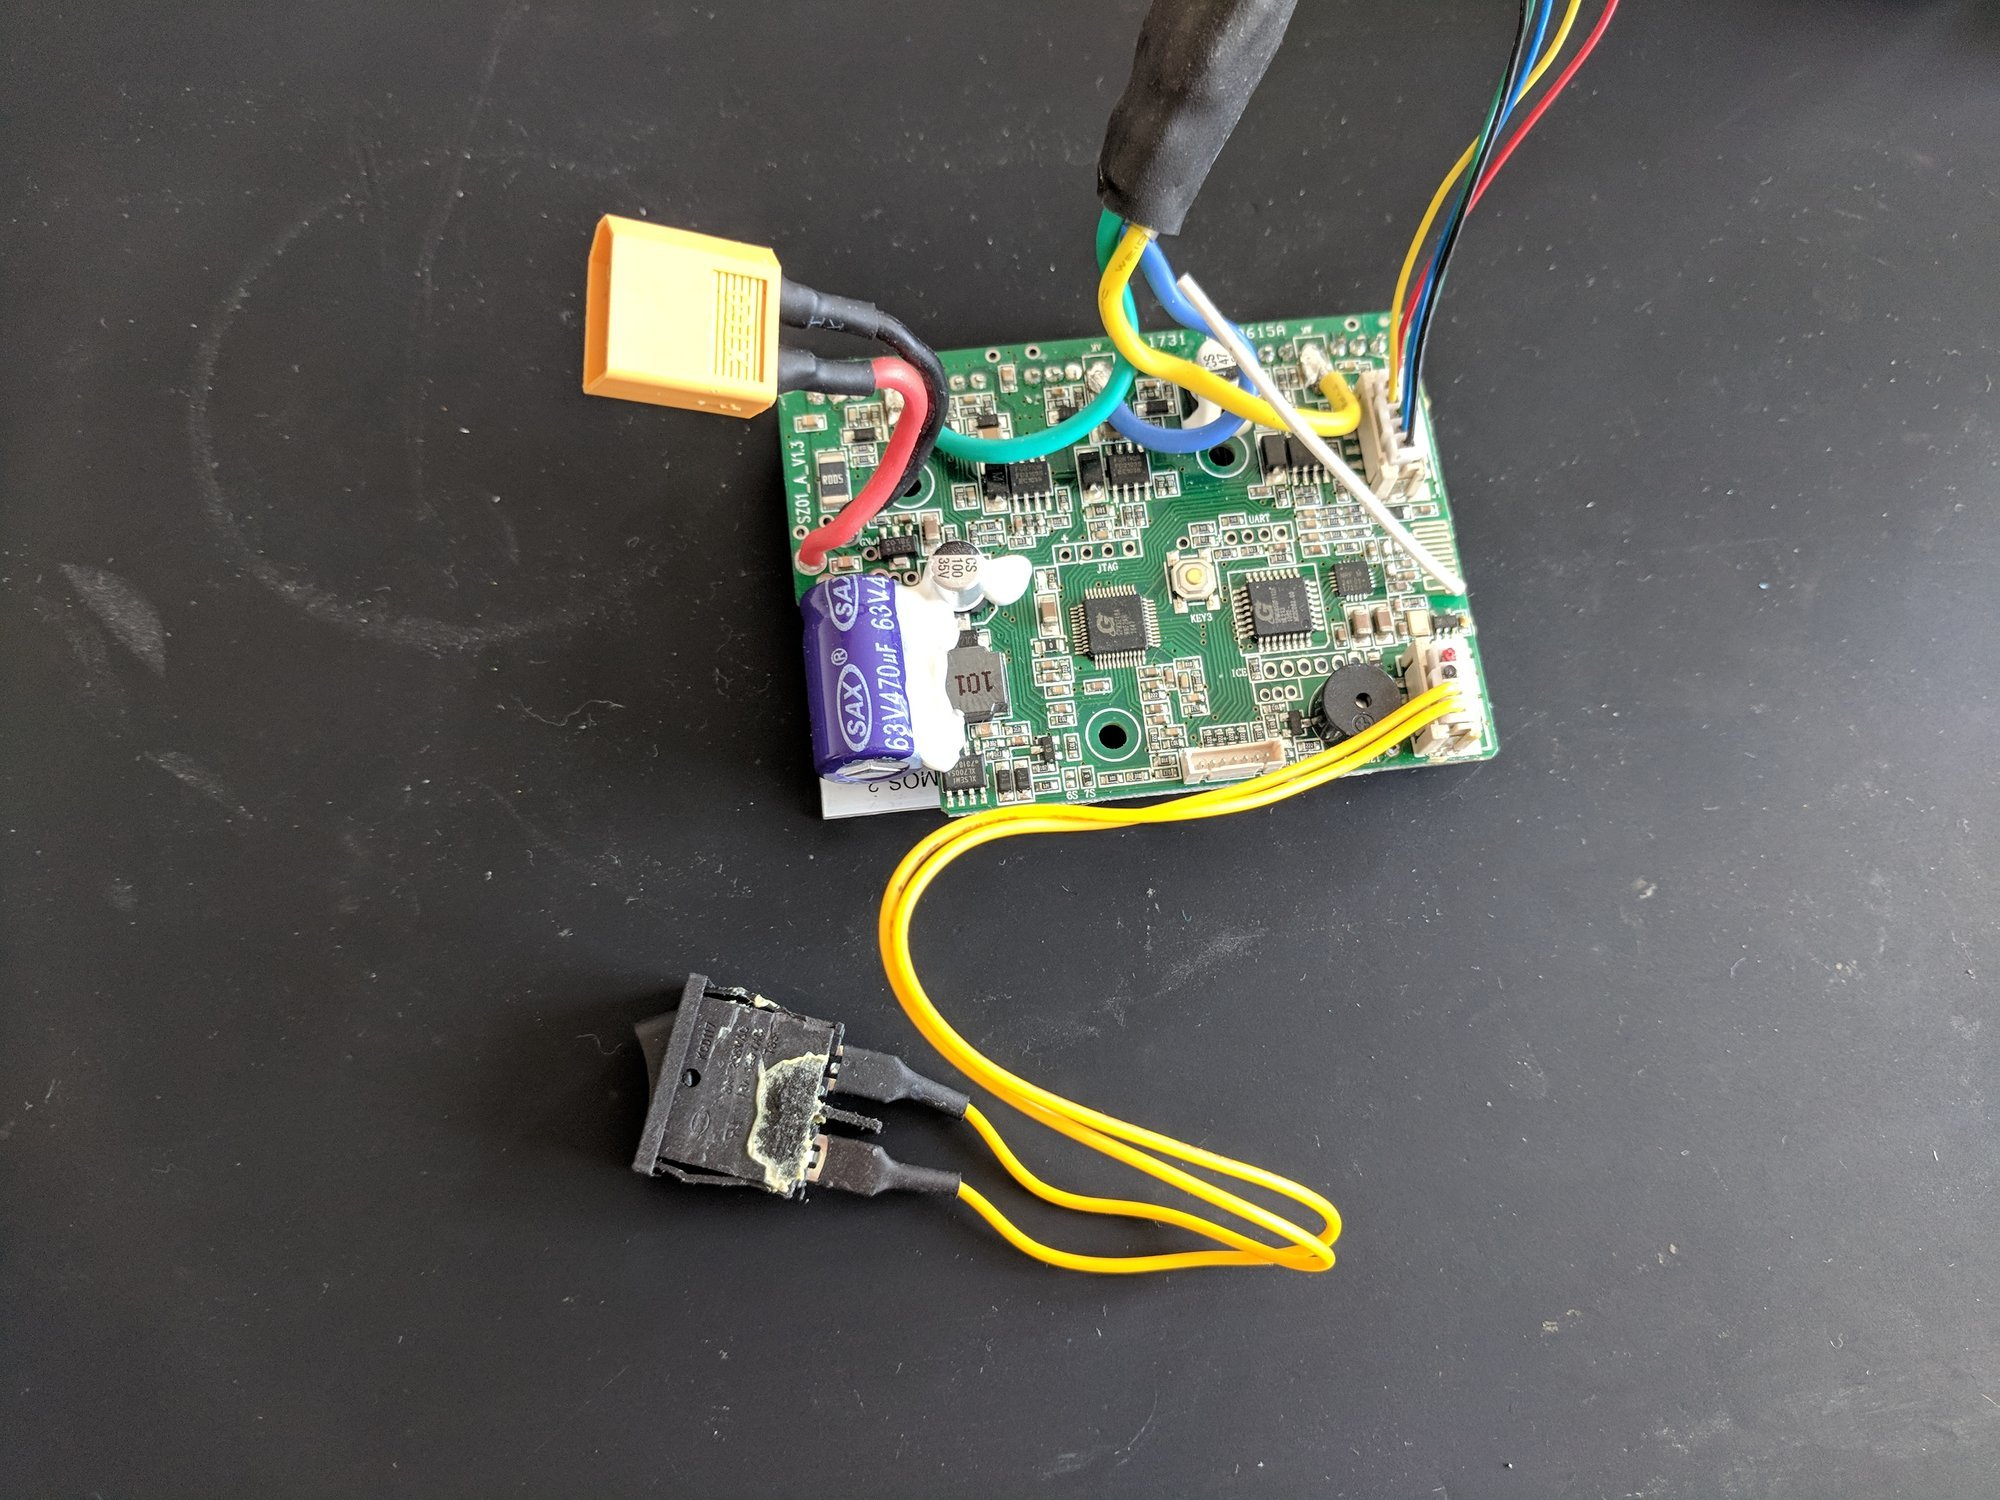 The main cicuit board of the electric skateboard with cables